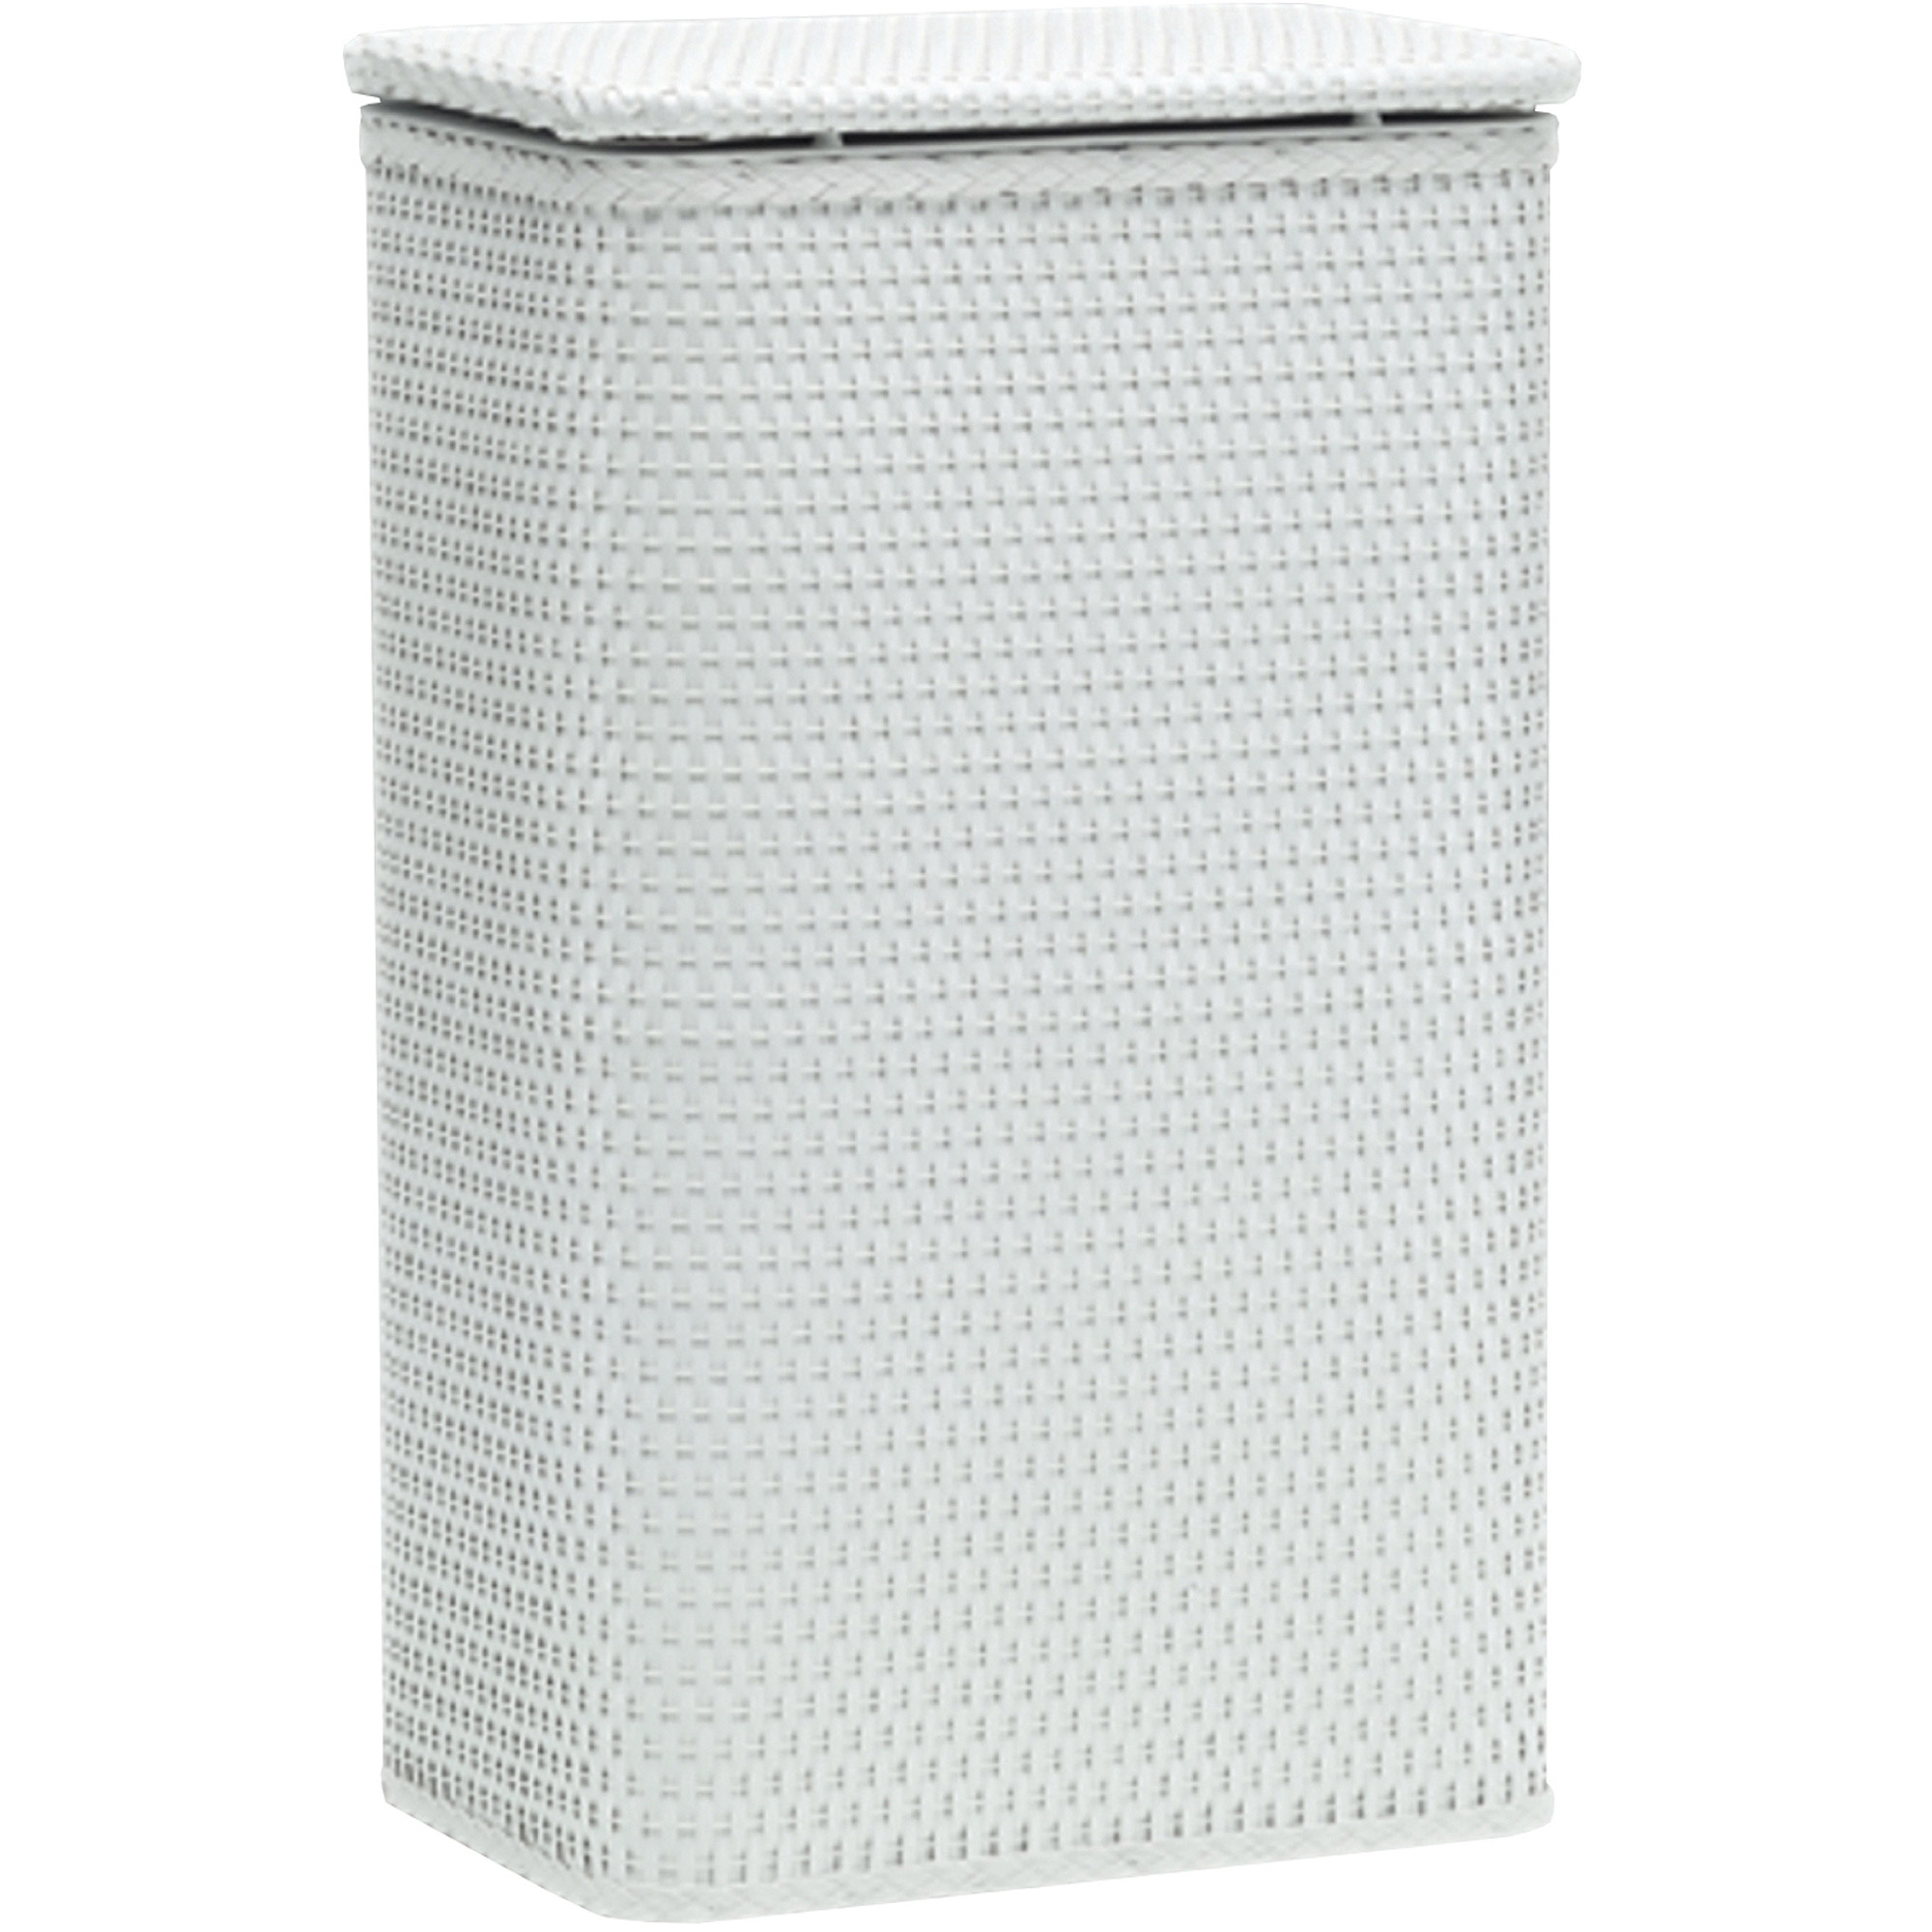 Chelsea Collection Apartment Hamper, White